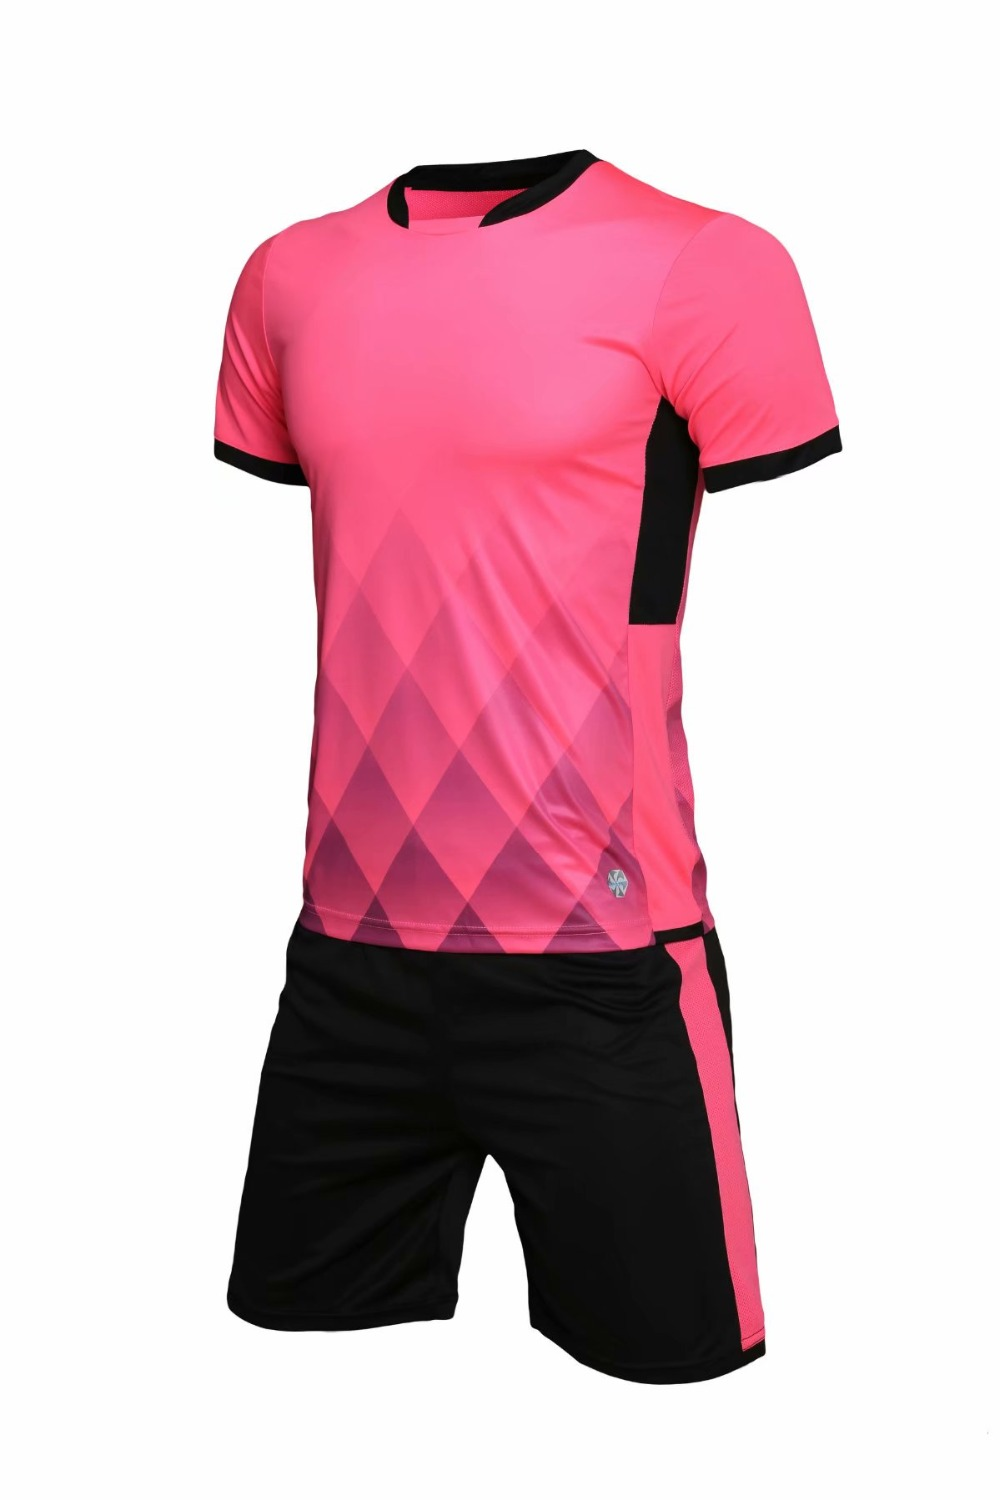 2018 Mens Summer Tights Shirt Athletic Design T Shirt Running